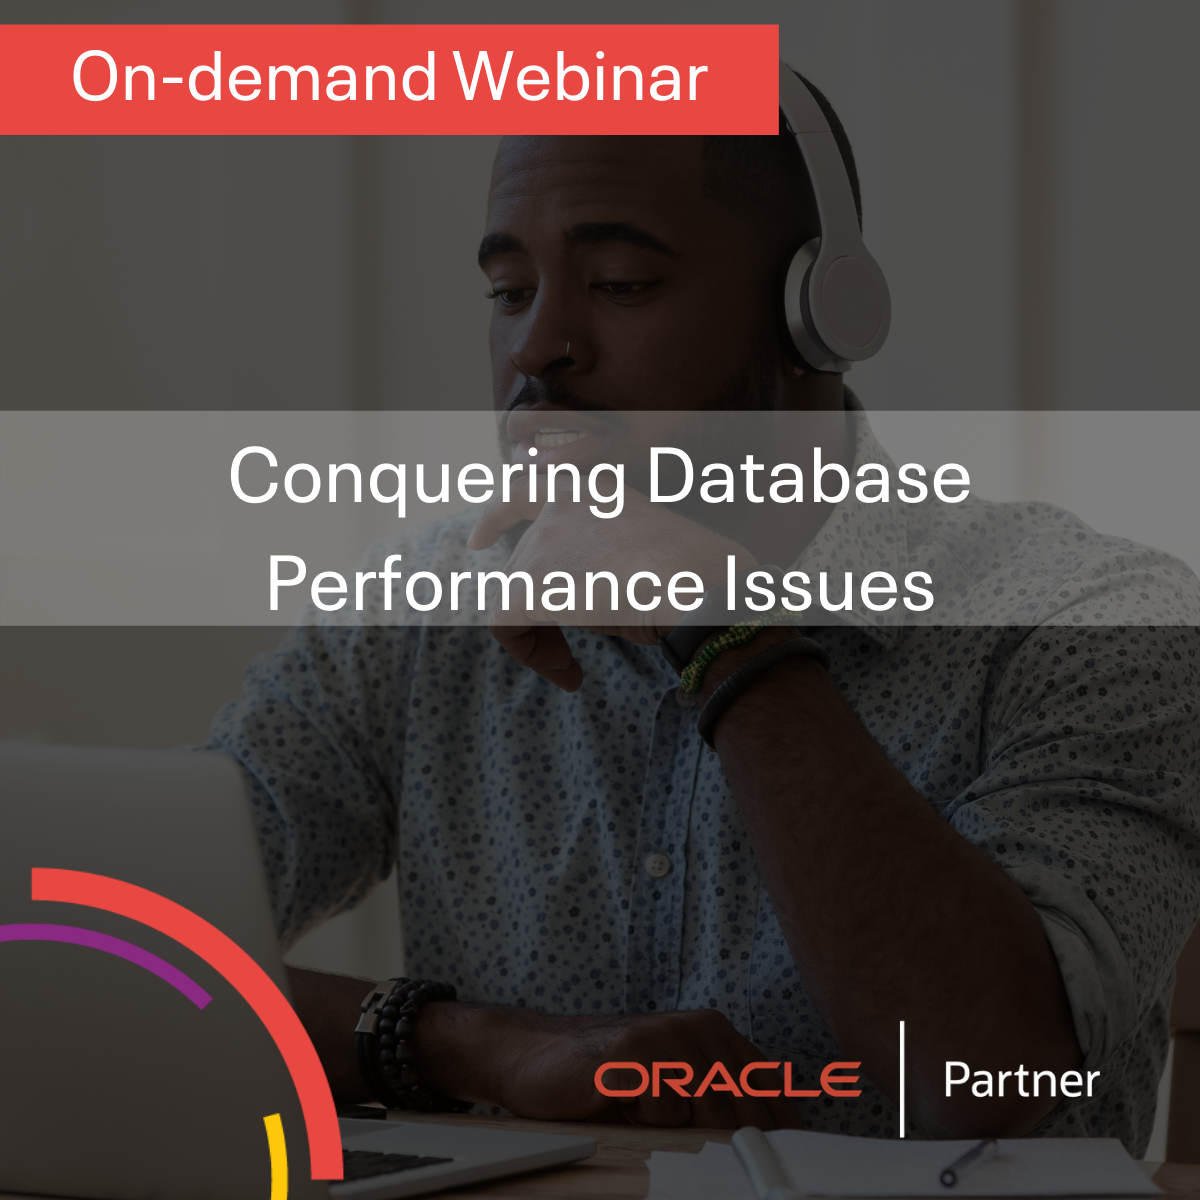 Conquering Database Performance Issues